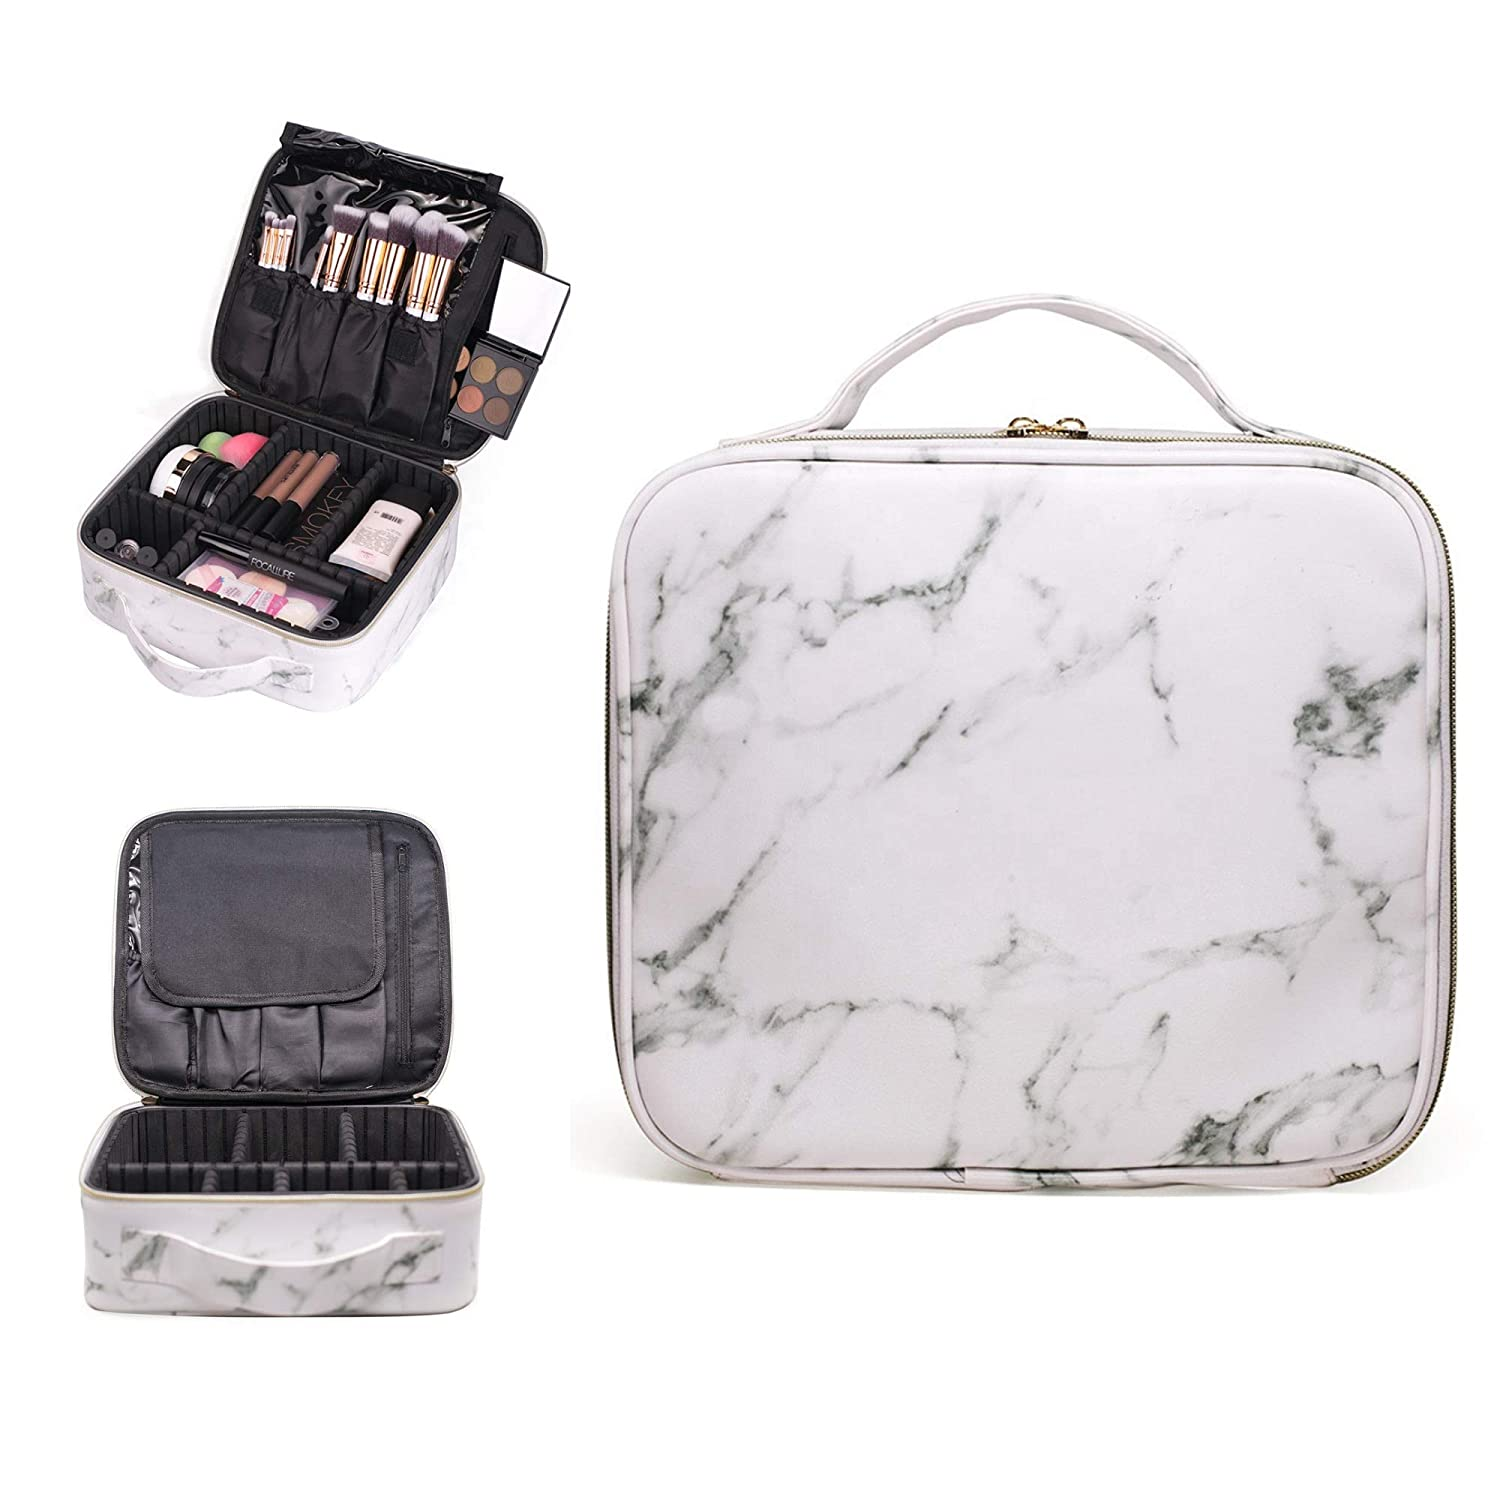 R R Beauty Luxury White Marble Travel Makeup Bag Train Case, Waterproof Cosmetic Case with Adjustable Dividers for Makeup, Toiletries, and Electronics